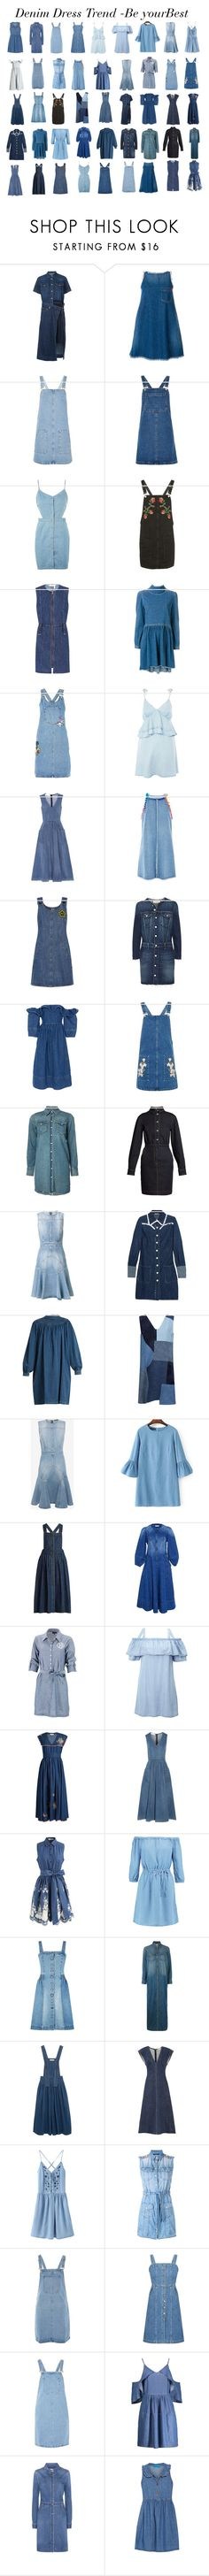 """Denim Dress trend"" by gabriela2105 ❤ liked on Polyvore featuring Sacai, Love Moschino, Topshop, See by Chloé, Erika Cavallini Semi-Couture, CO, Jaded, Miu Miu, AMO and Apiece Apart"